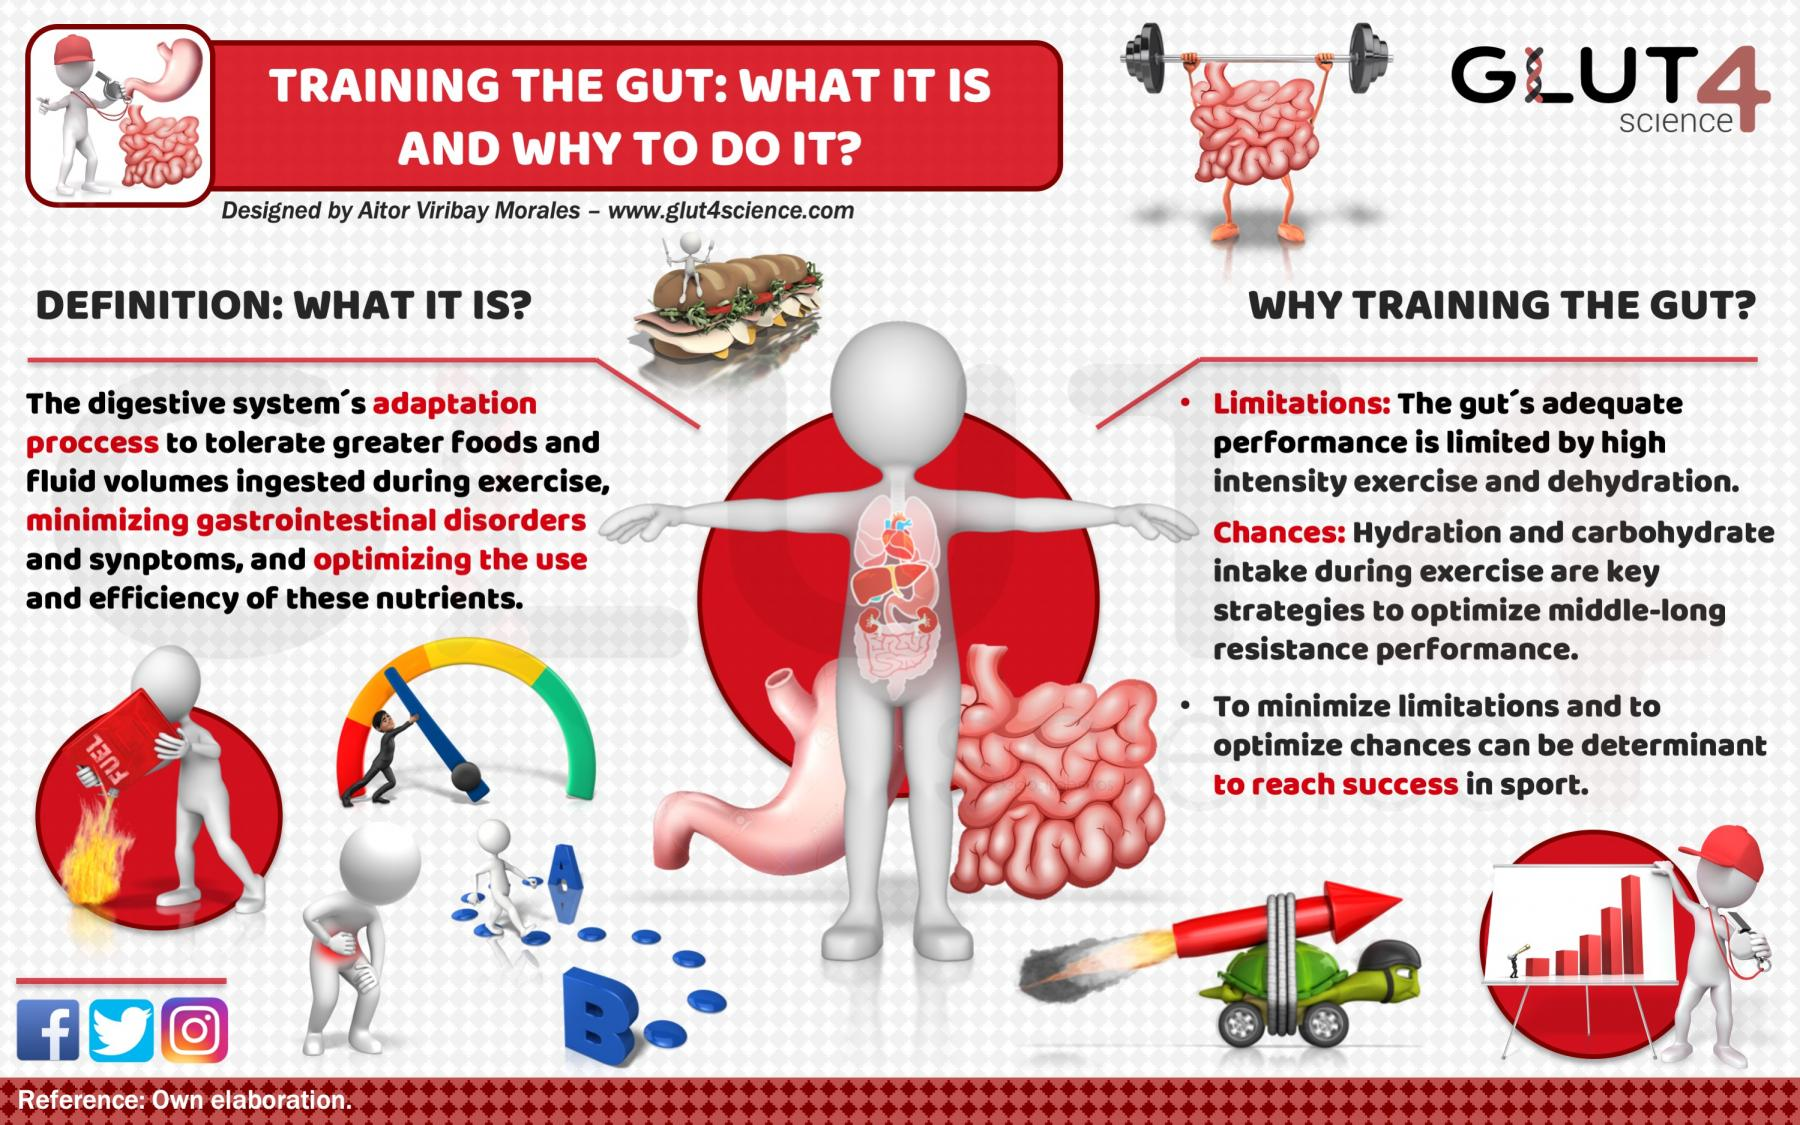 Training the gut - What it is?